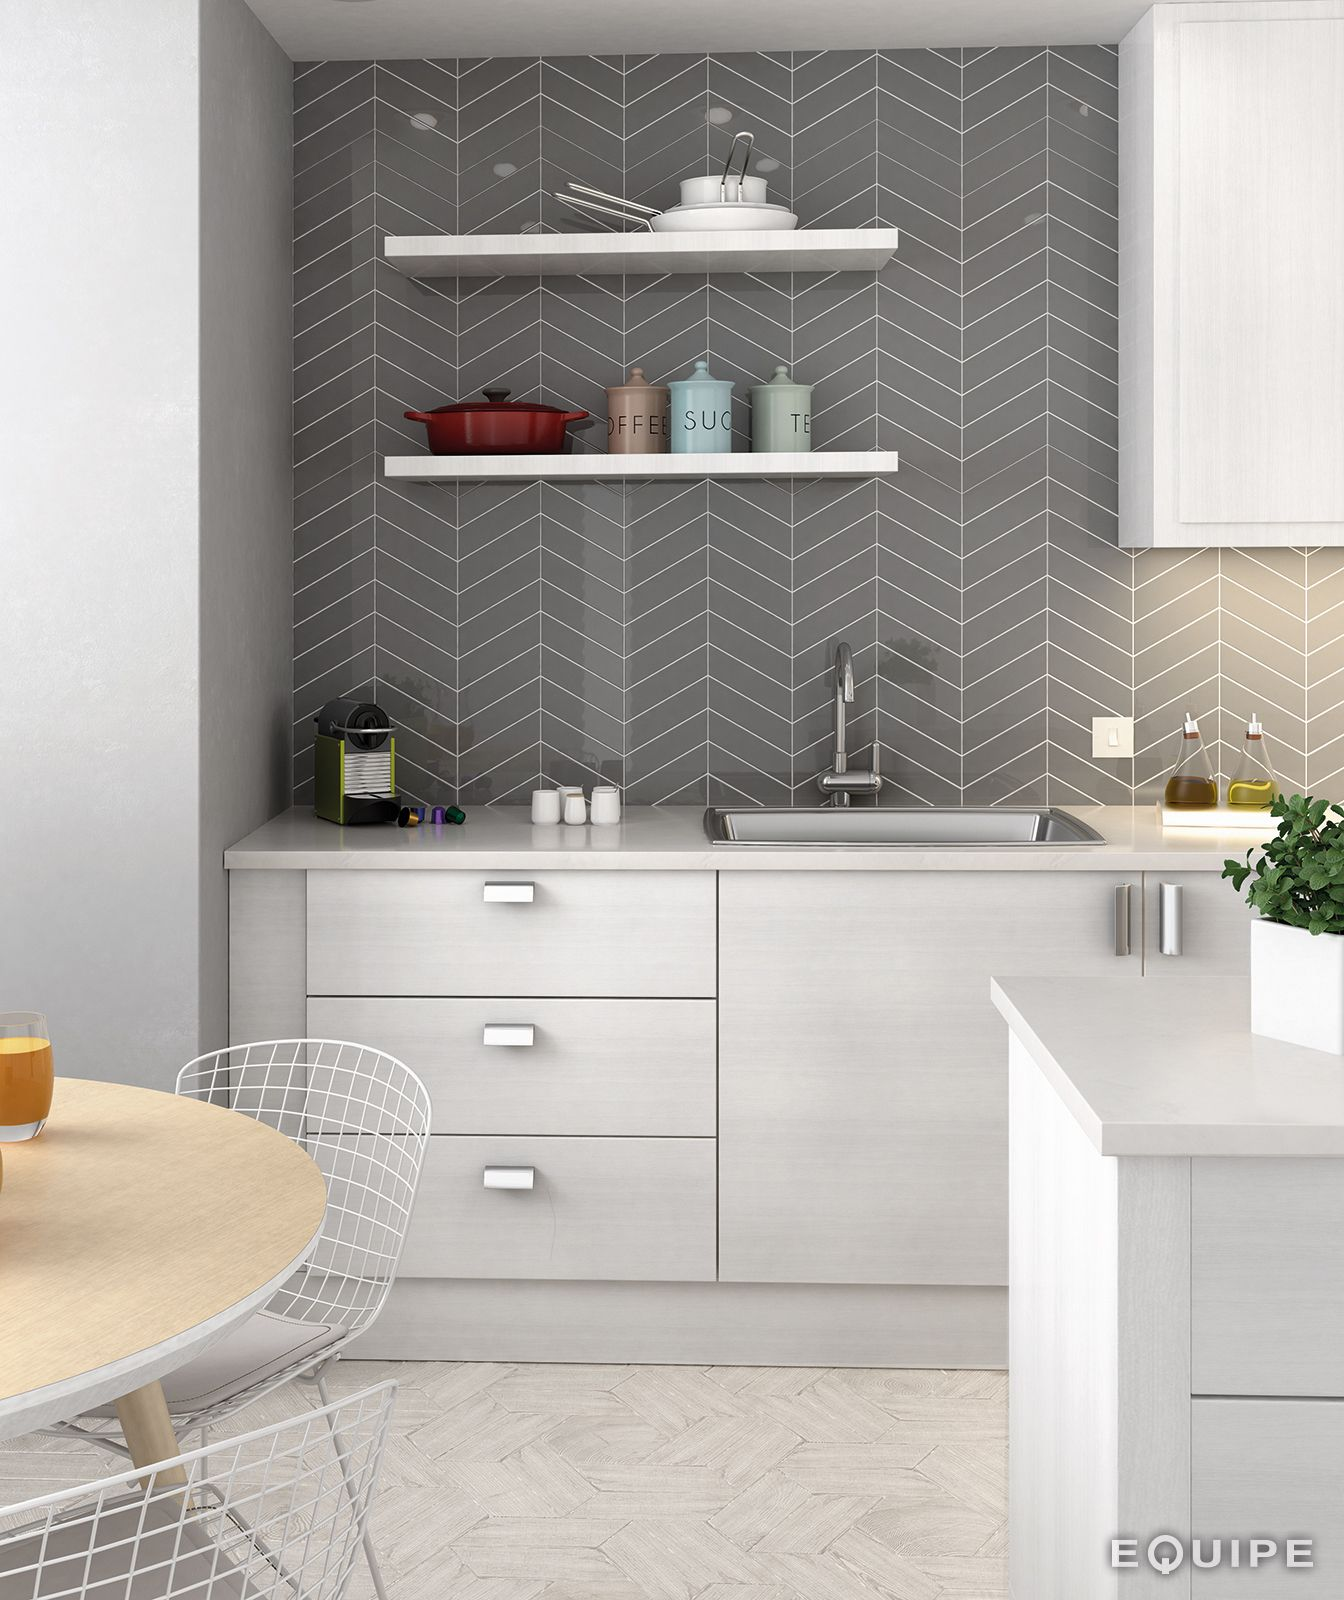 Equipe Ceramicas Grey Chevron Kitchen Tiles From Equipe Ceramicas Beautiful